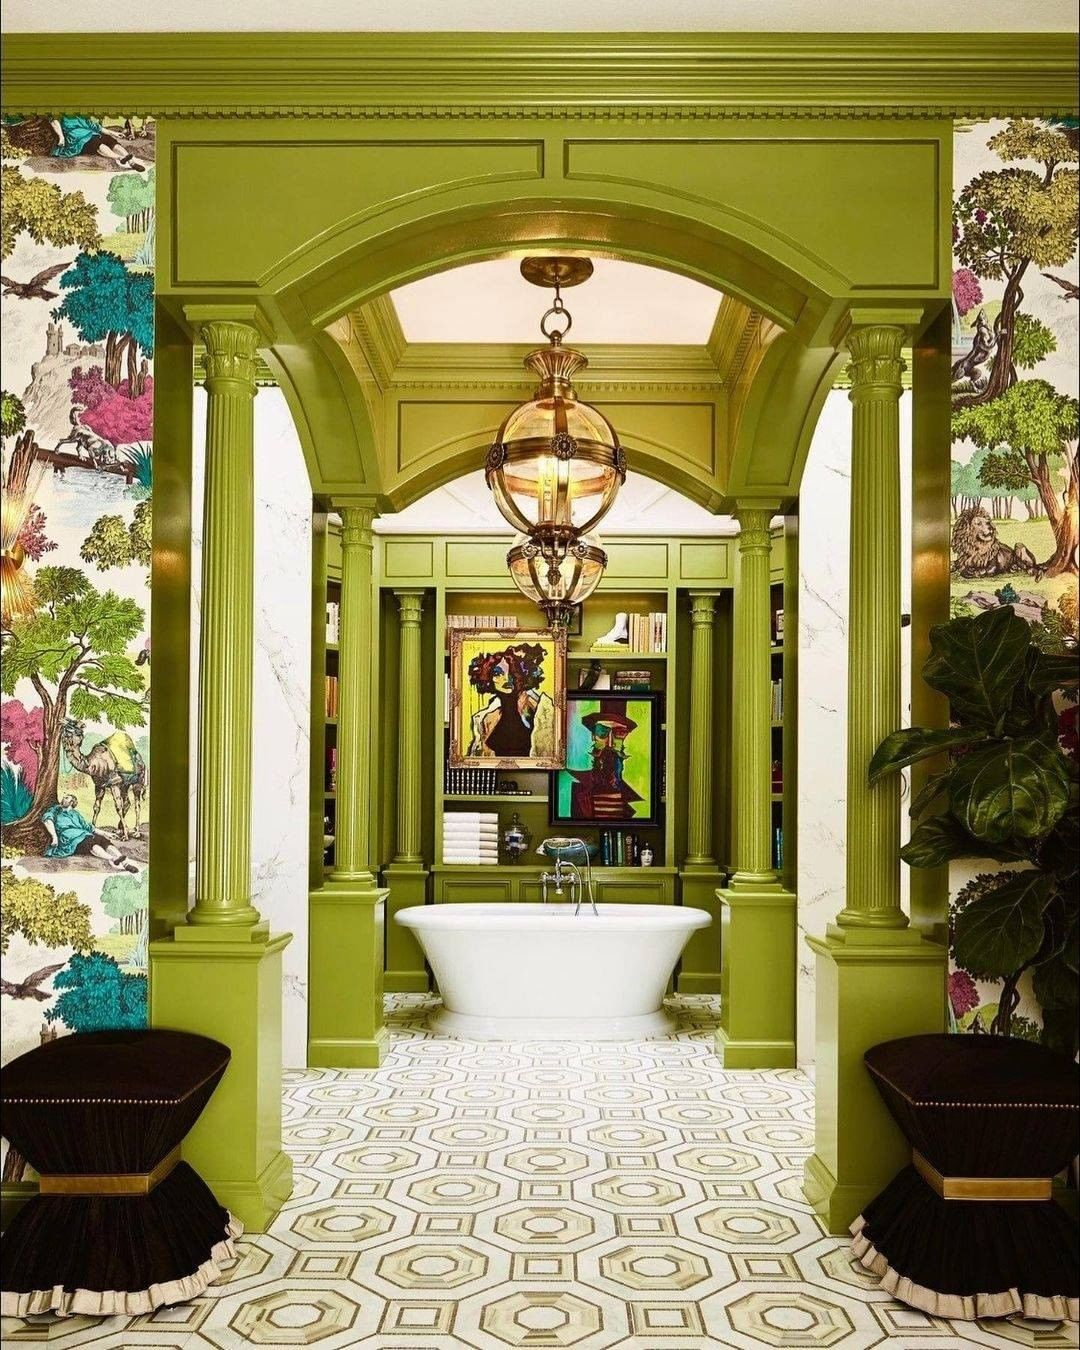 Stunning Colorful Master Bathroom  colorful bathroom Colorful Bathrooms: Discover The Latest Bathroom Color Ideas 177662745 3769432309772761 8491673986406024017 n